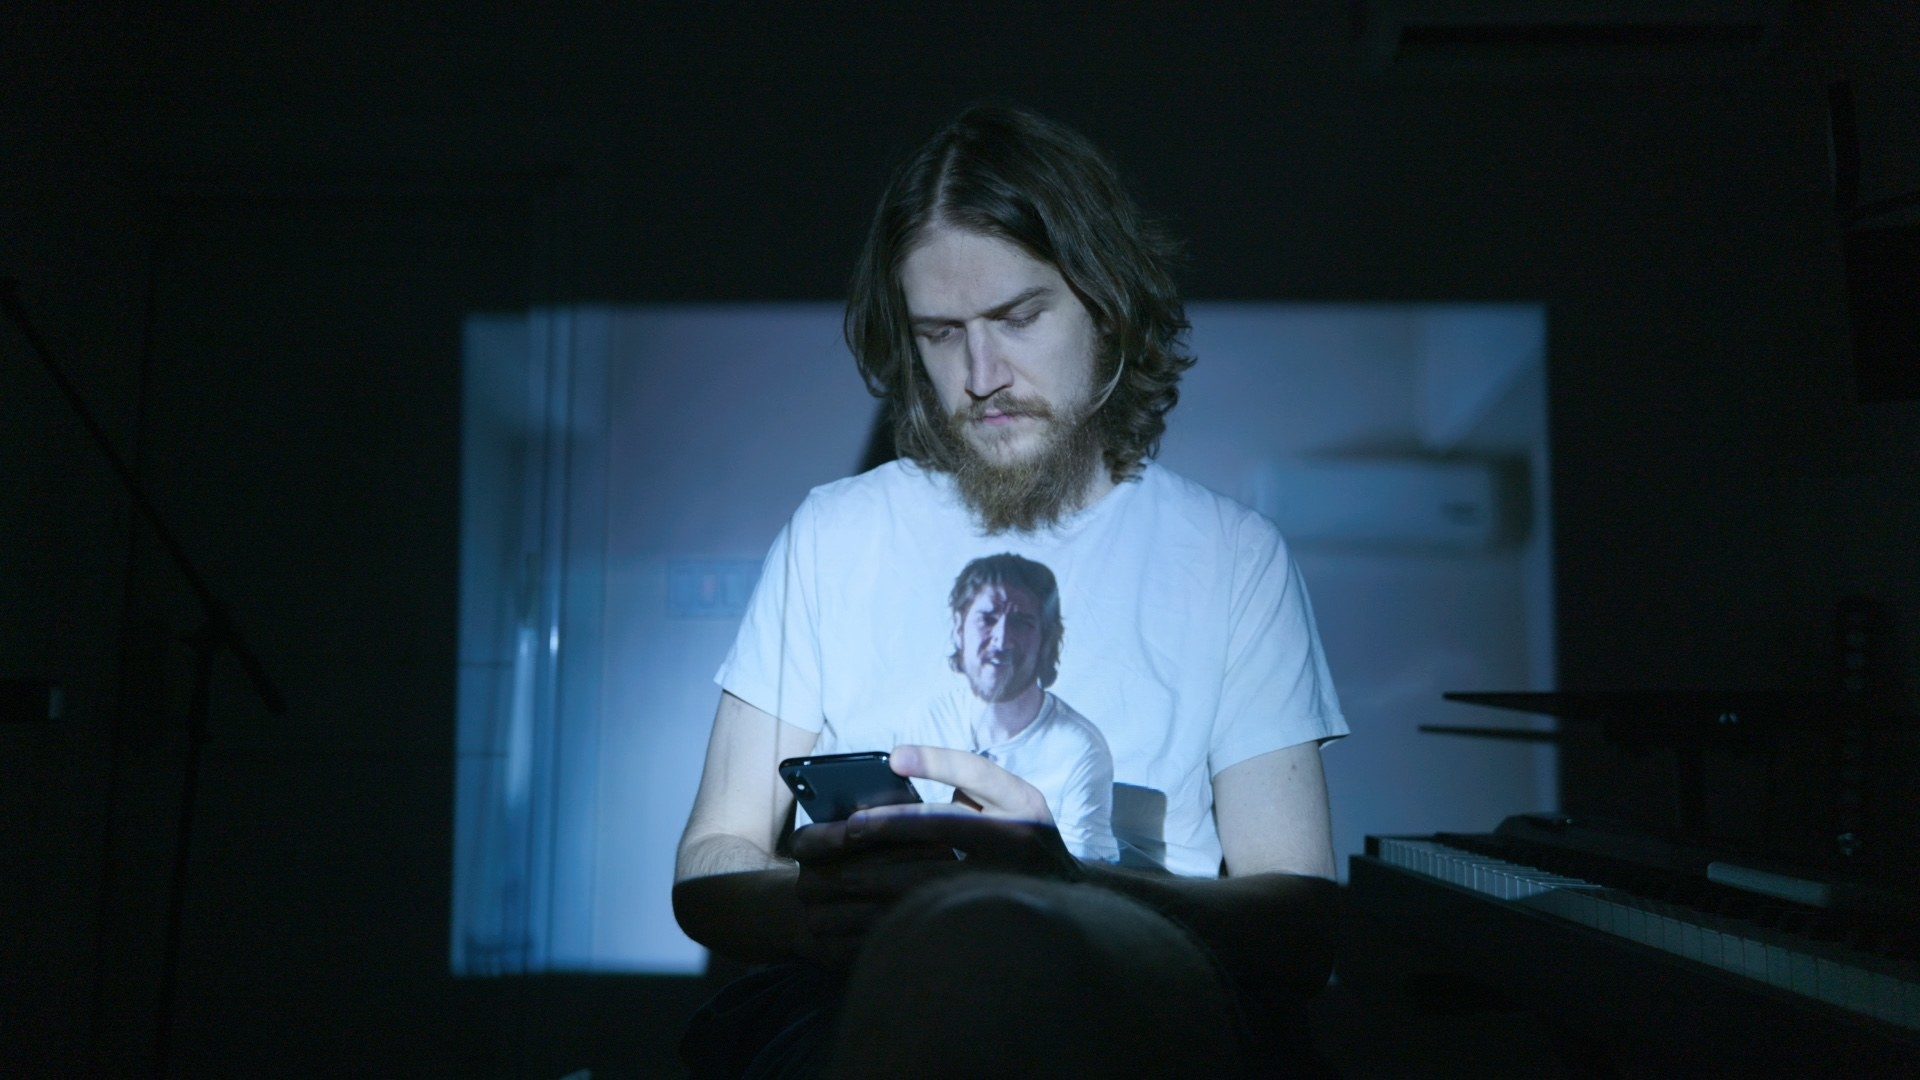 Bo looks down at his phone while a vide of Bo reflects onto his shirt